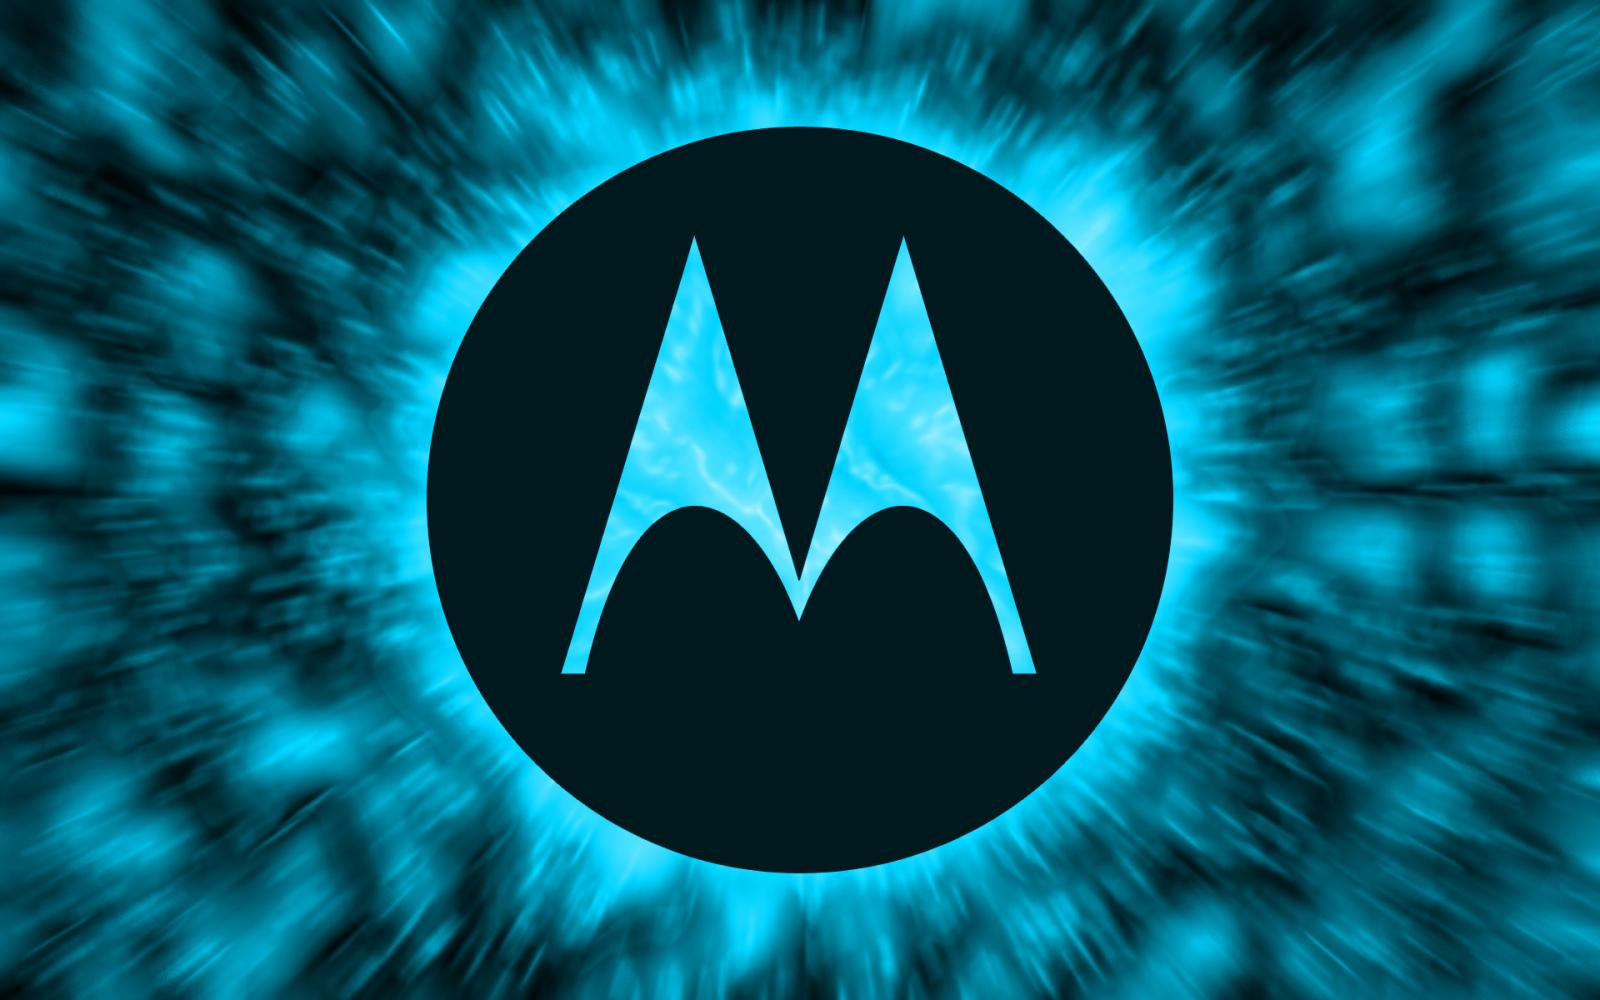 Motorola Wallpapers Top Free Motorola Backgrounds